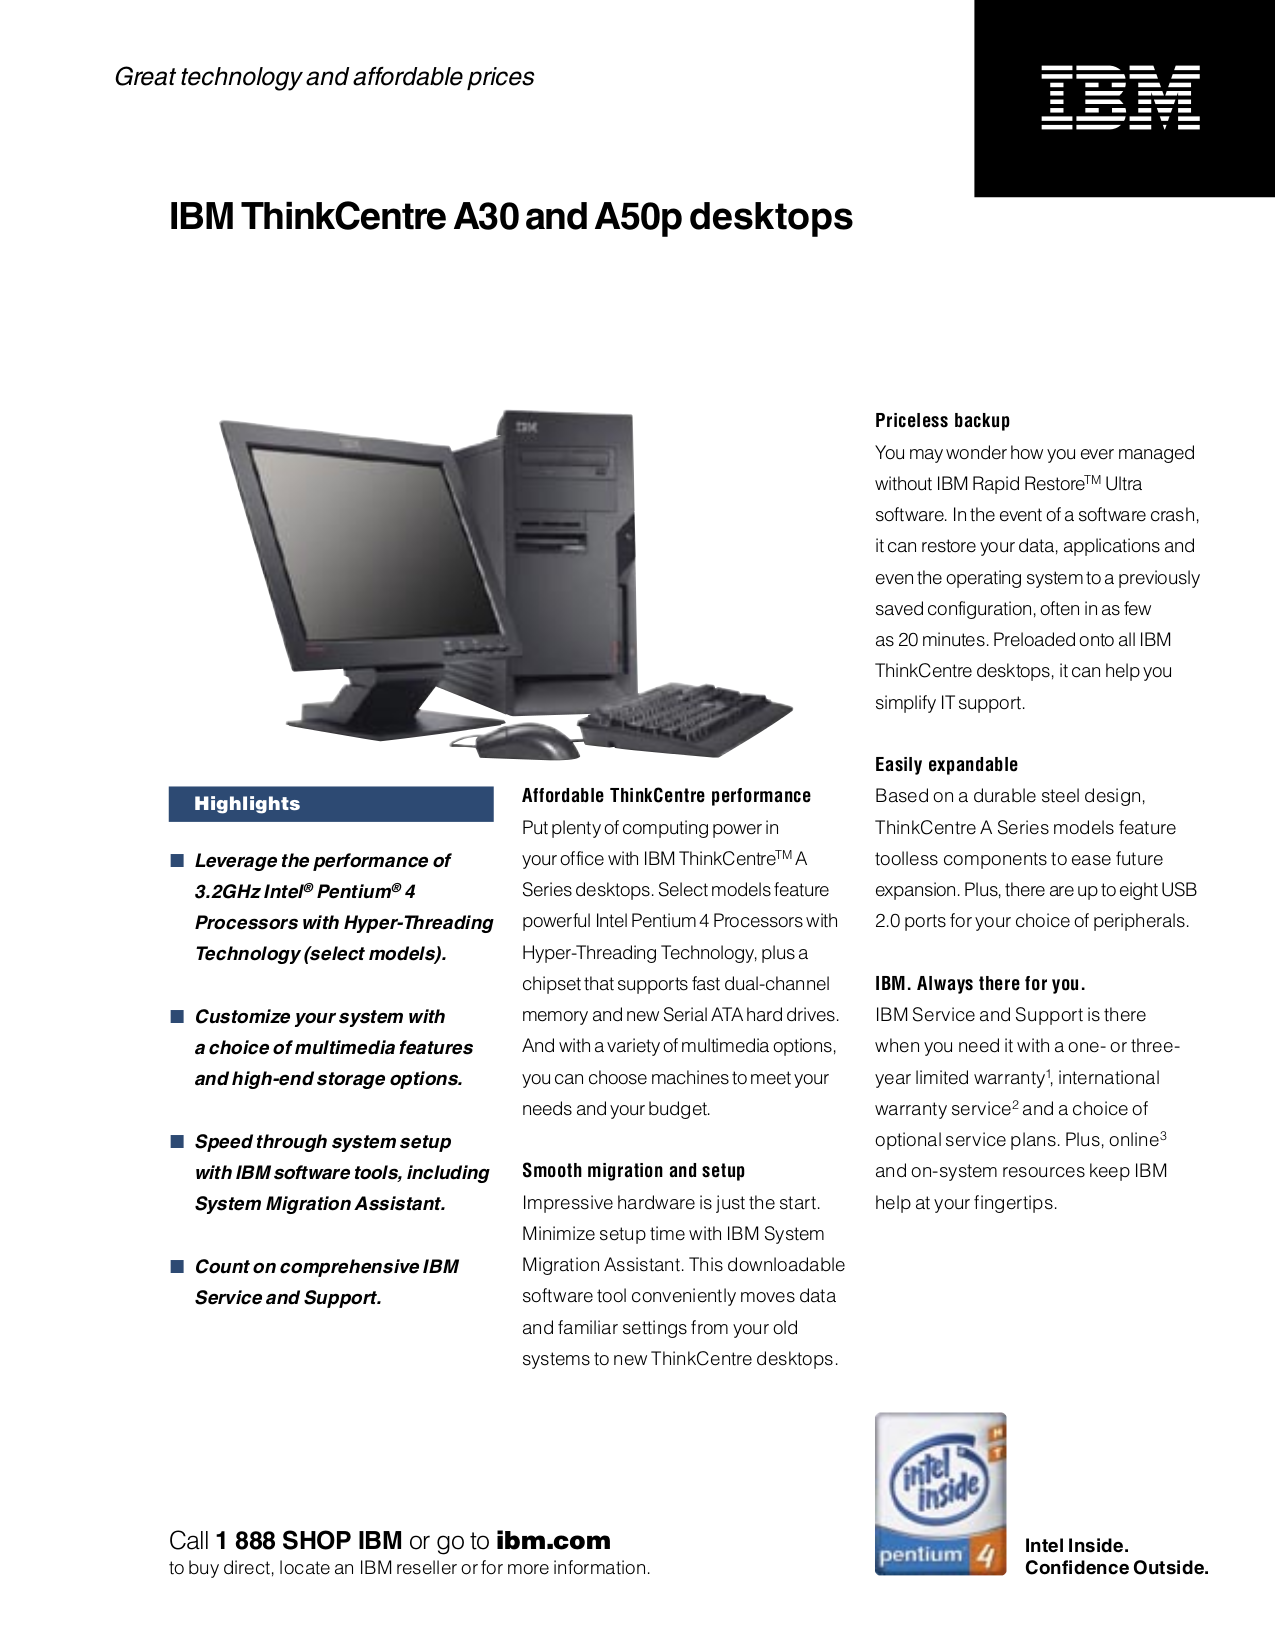 pdf for Lenovo Desktop ThinkCentre A50p 8194 manual